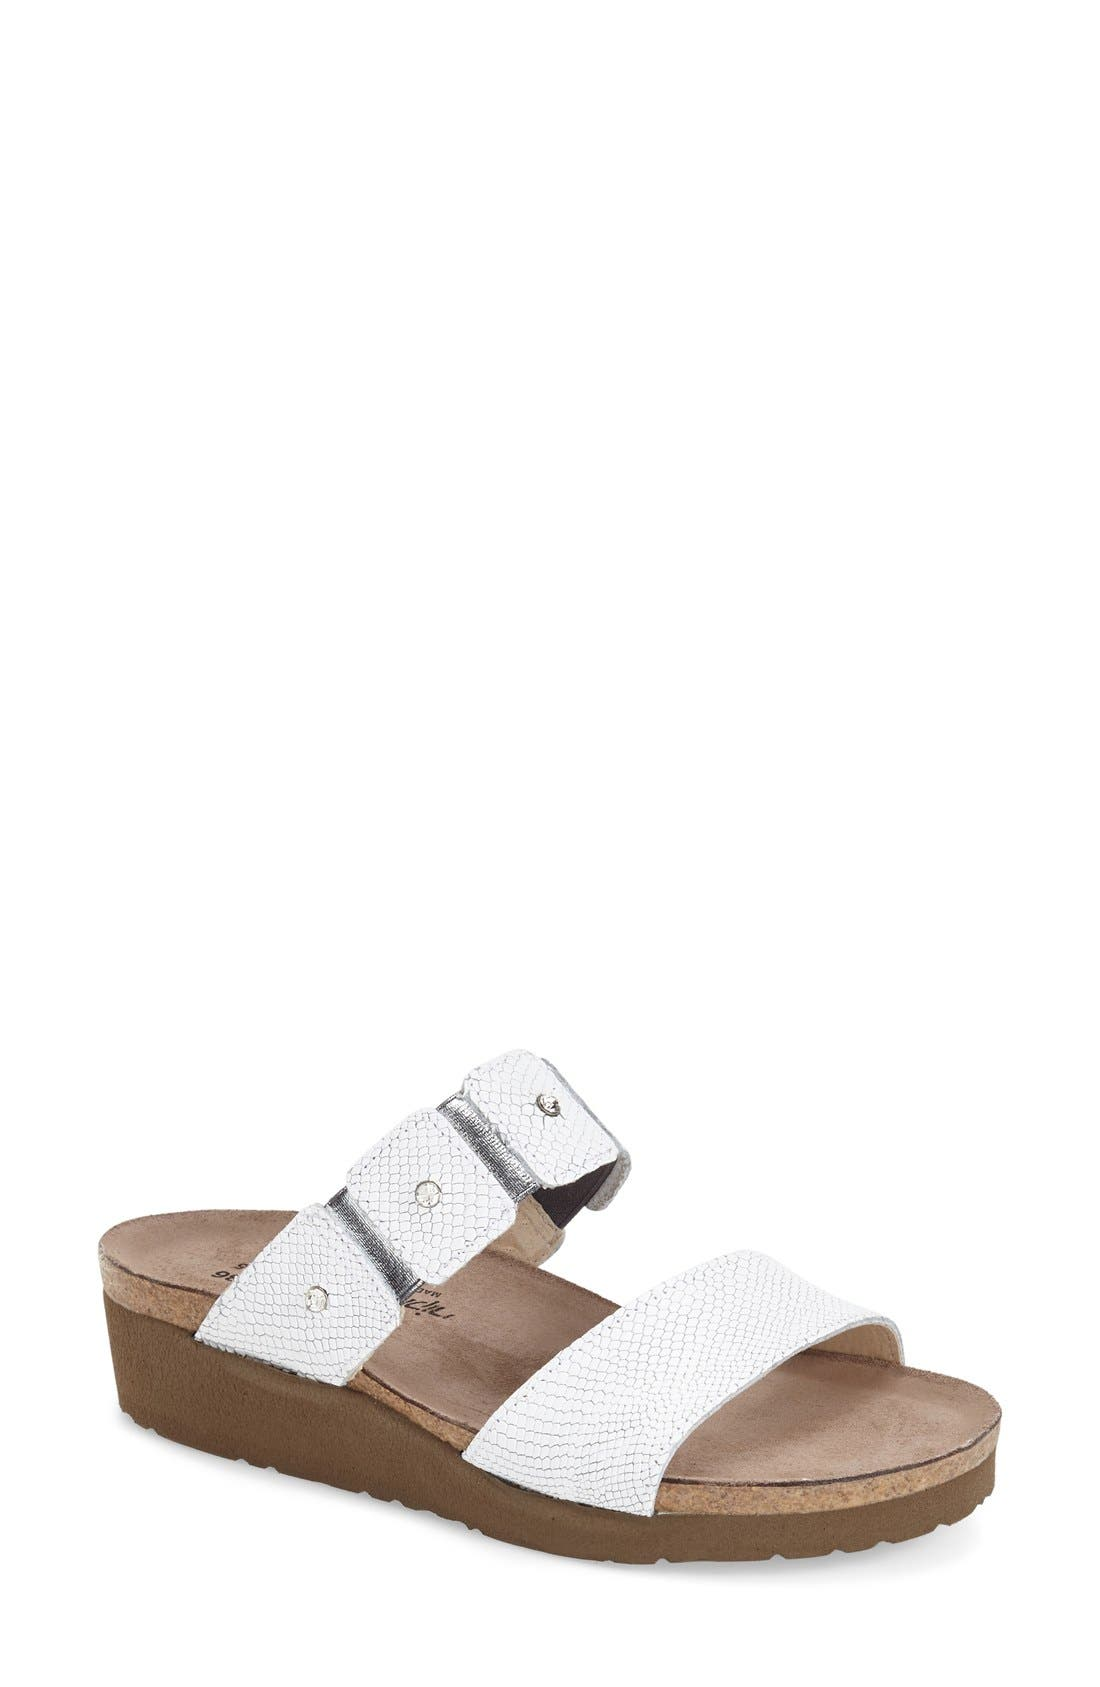 'Ashley' Sandal,                         Main,                         color, White Snake Leather